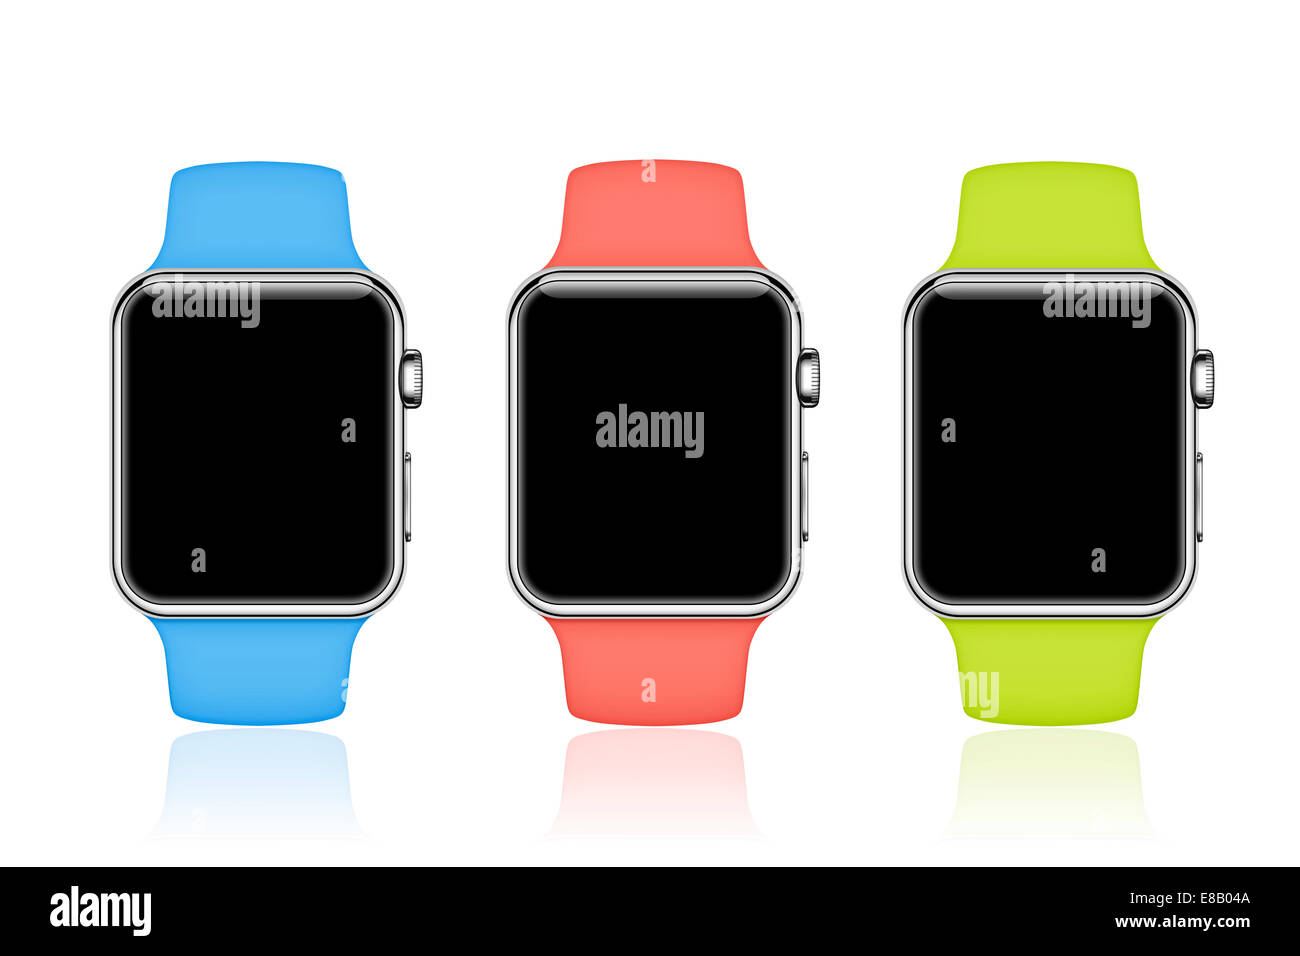 Apple Watch sport (blue, pink, green, blank screens) mobile device, digitally generated images. - Stock Image